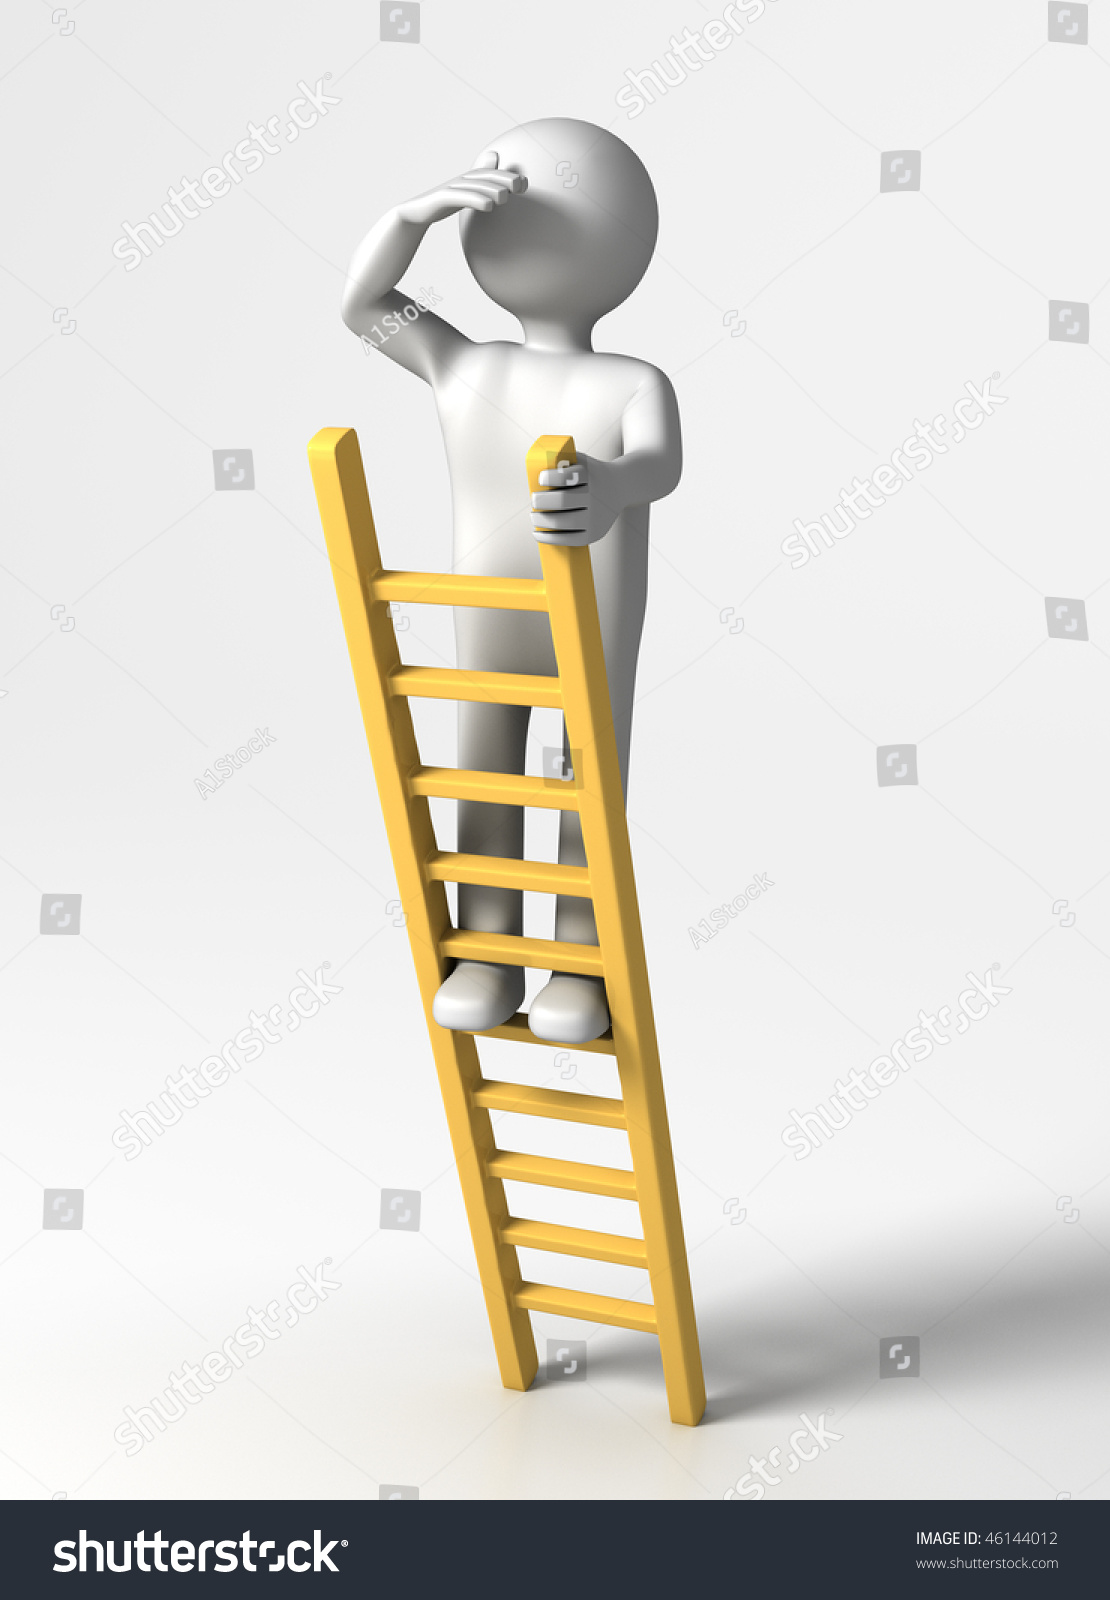 Looking ahead 3d person top ladder stock illustration 46144012 looking ahead 3d person at top of ladder looking far thecheapjerseys Image collections